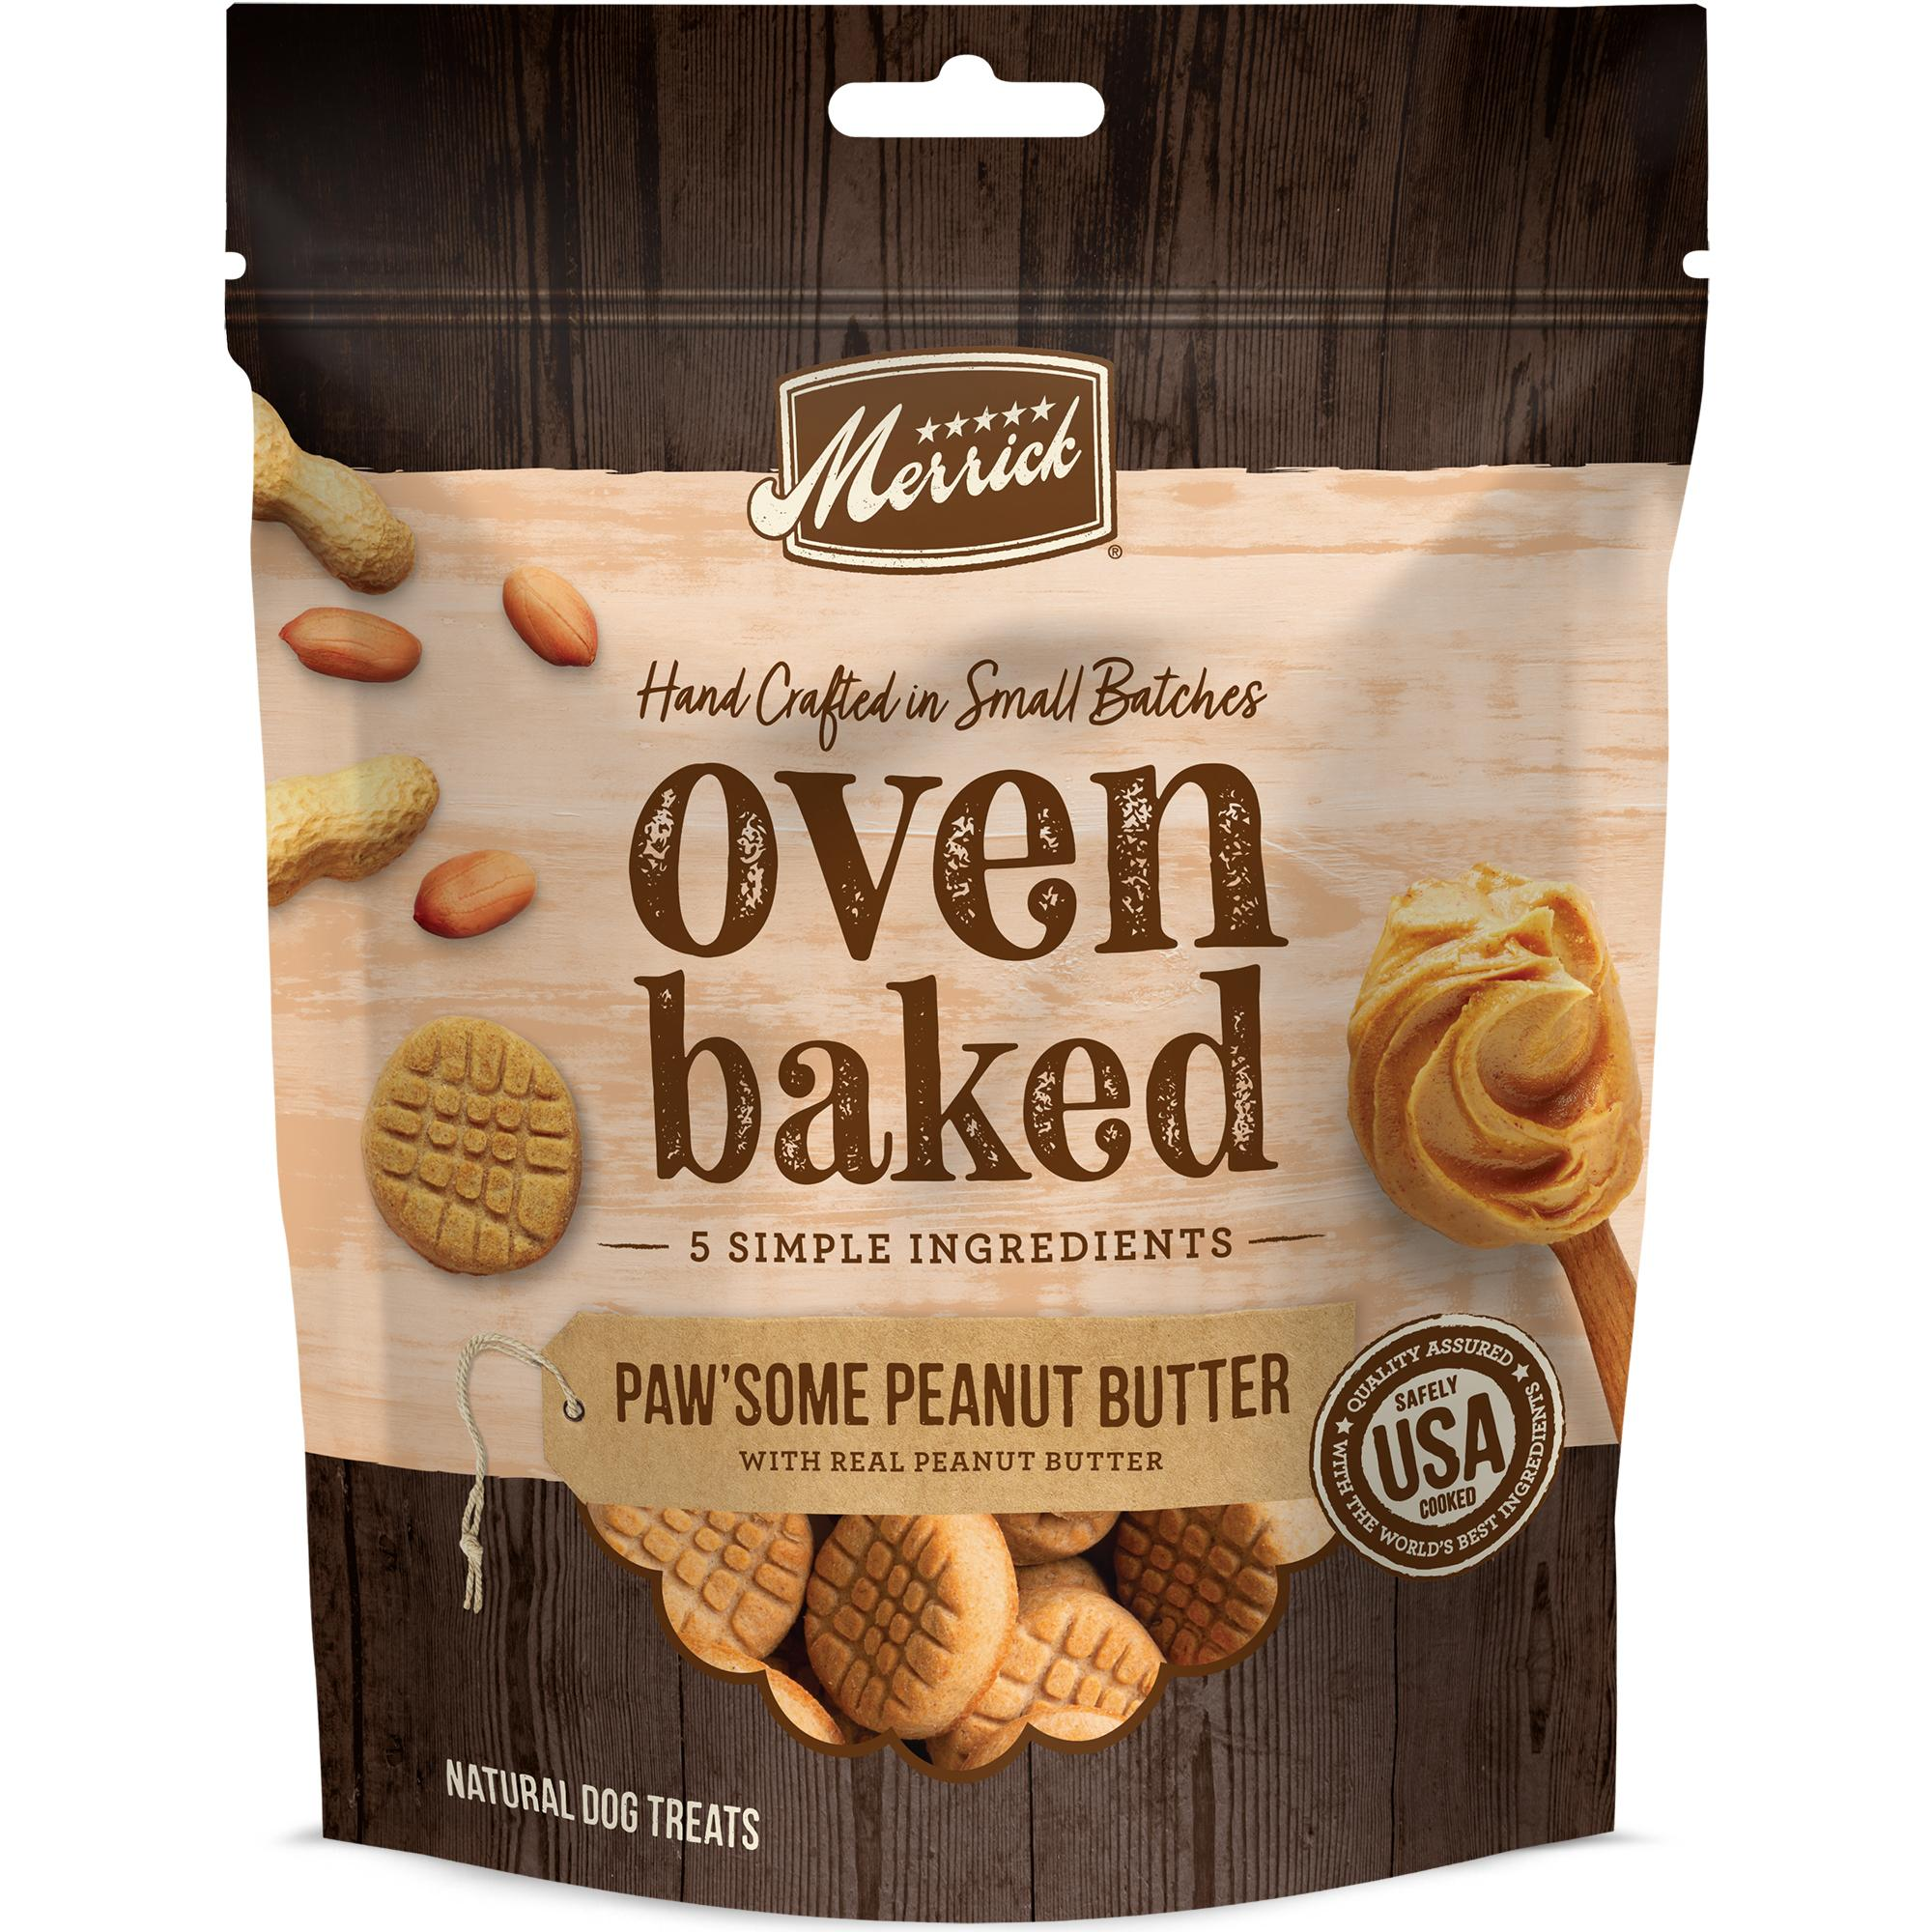 Merrick Oven Baked Paw'some Peanut Butter Dog Treats Image